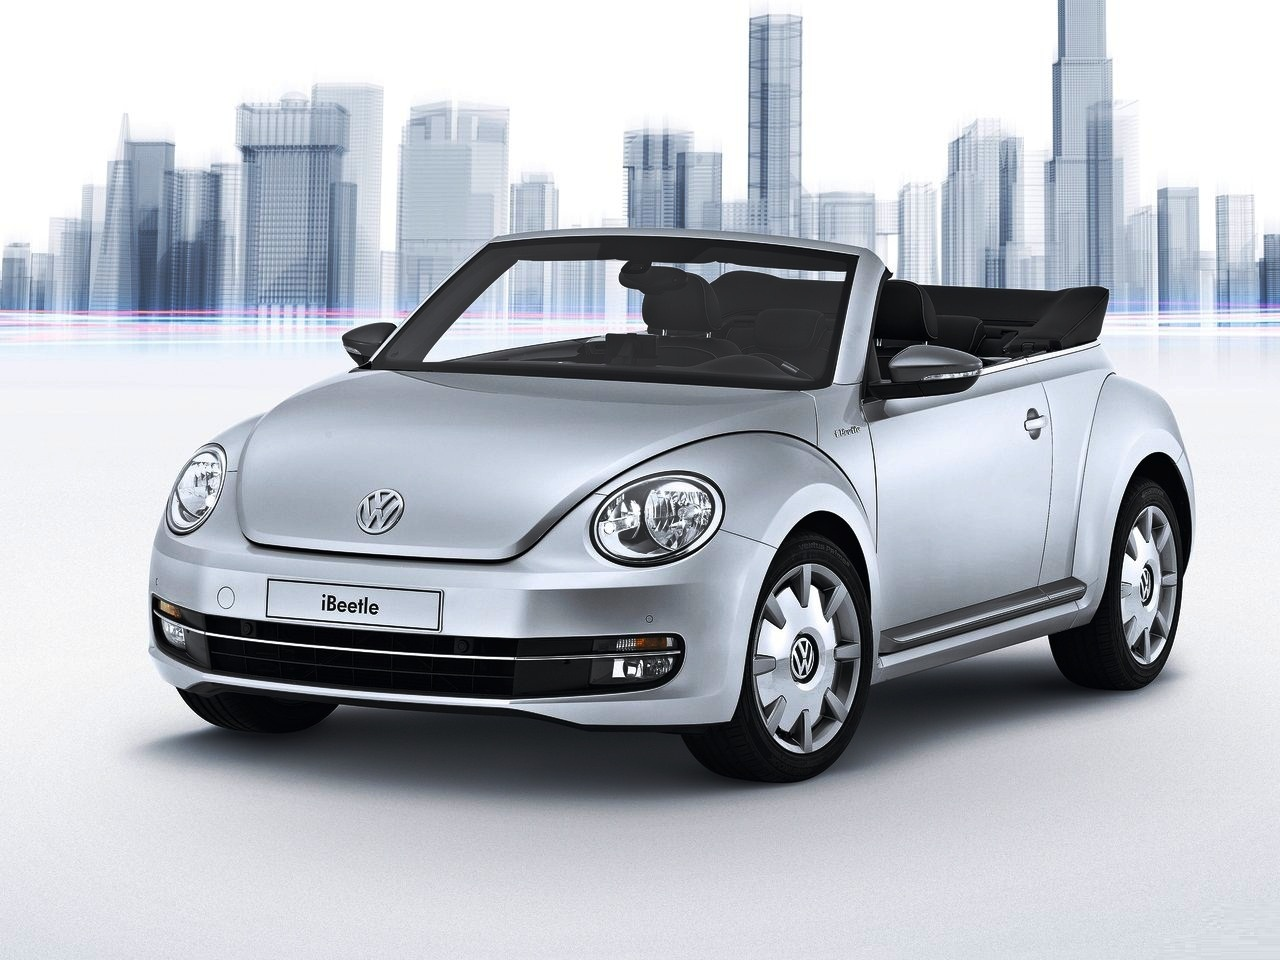 2015 Volkswagen IBeetle Wallpaper (View 5 of 6)